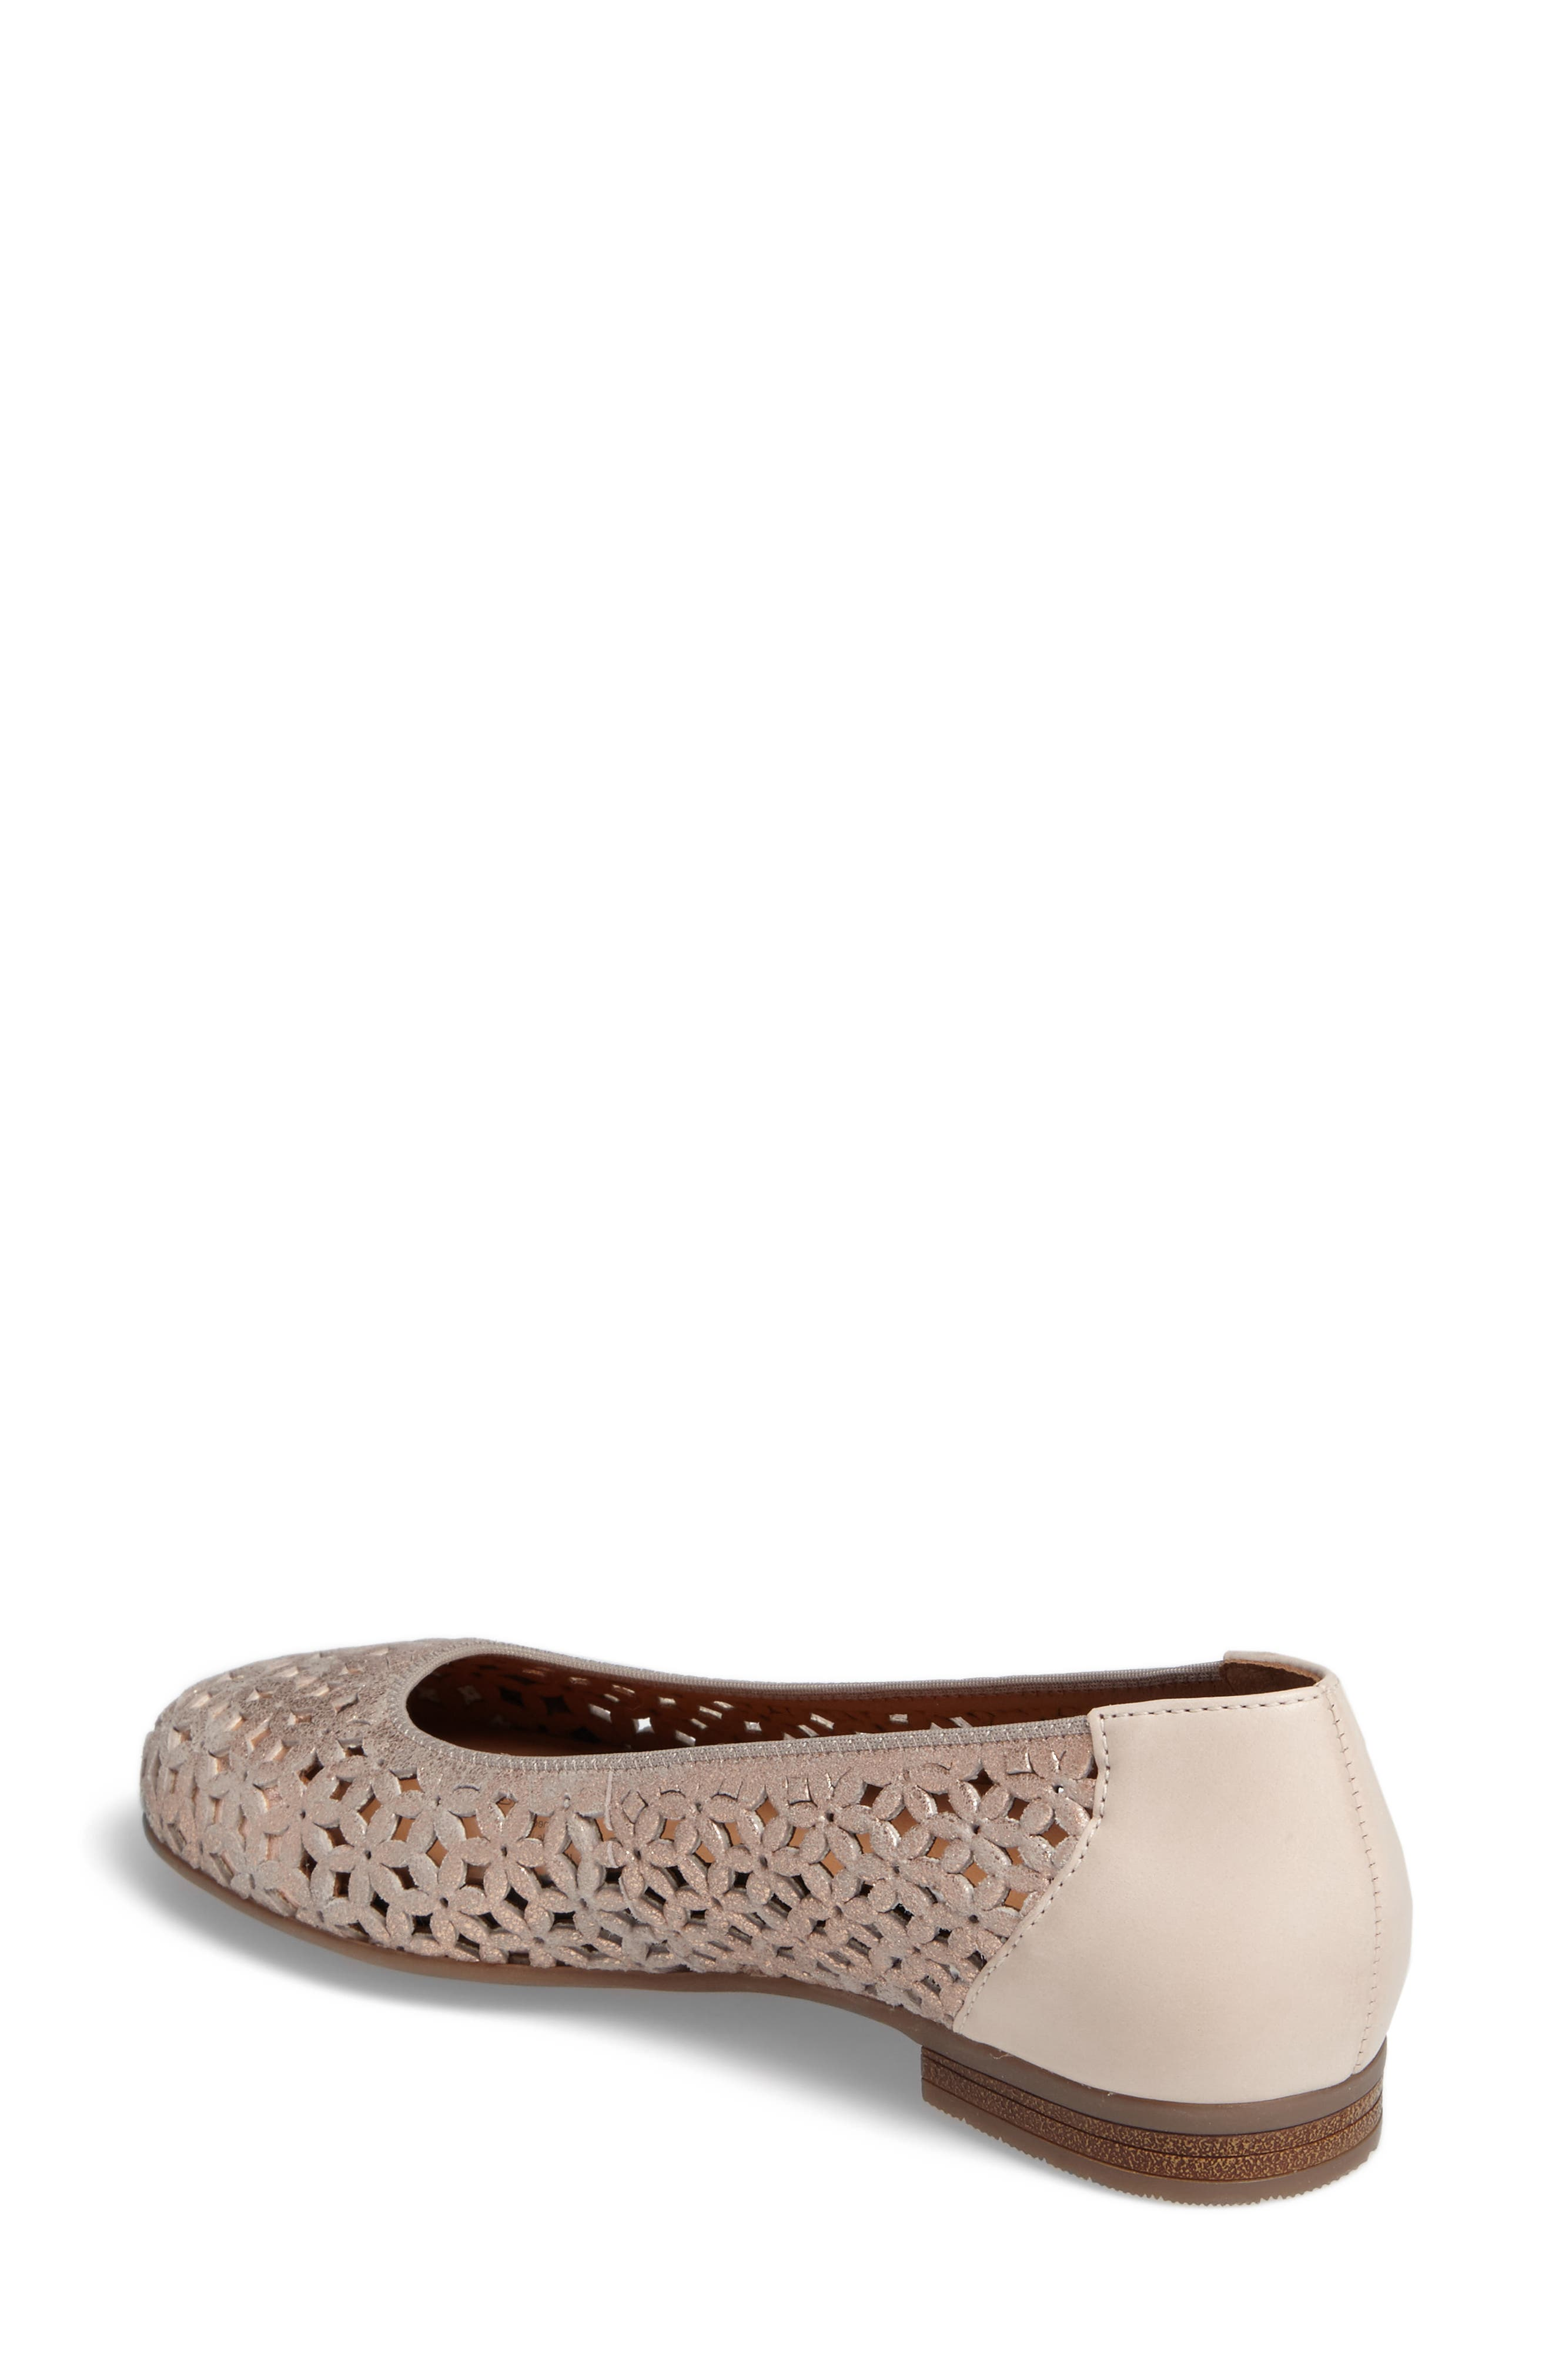 Stephanie Perforated Ballet Flat,                             Alternate thumbnail 2, color,                             ROSE GOLD LEATHER